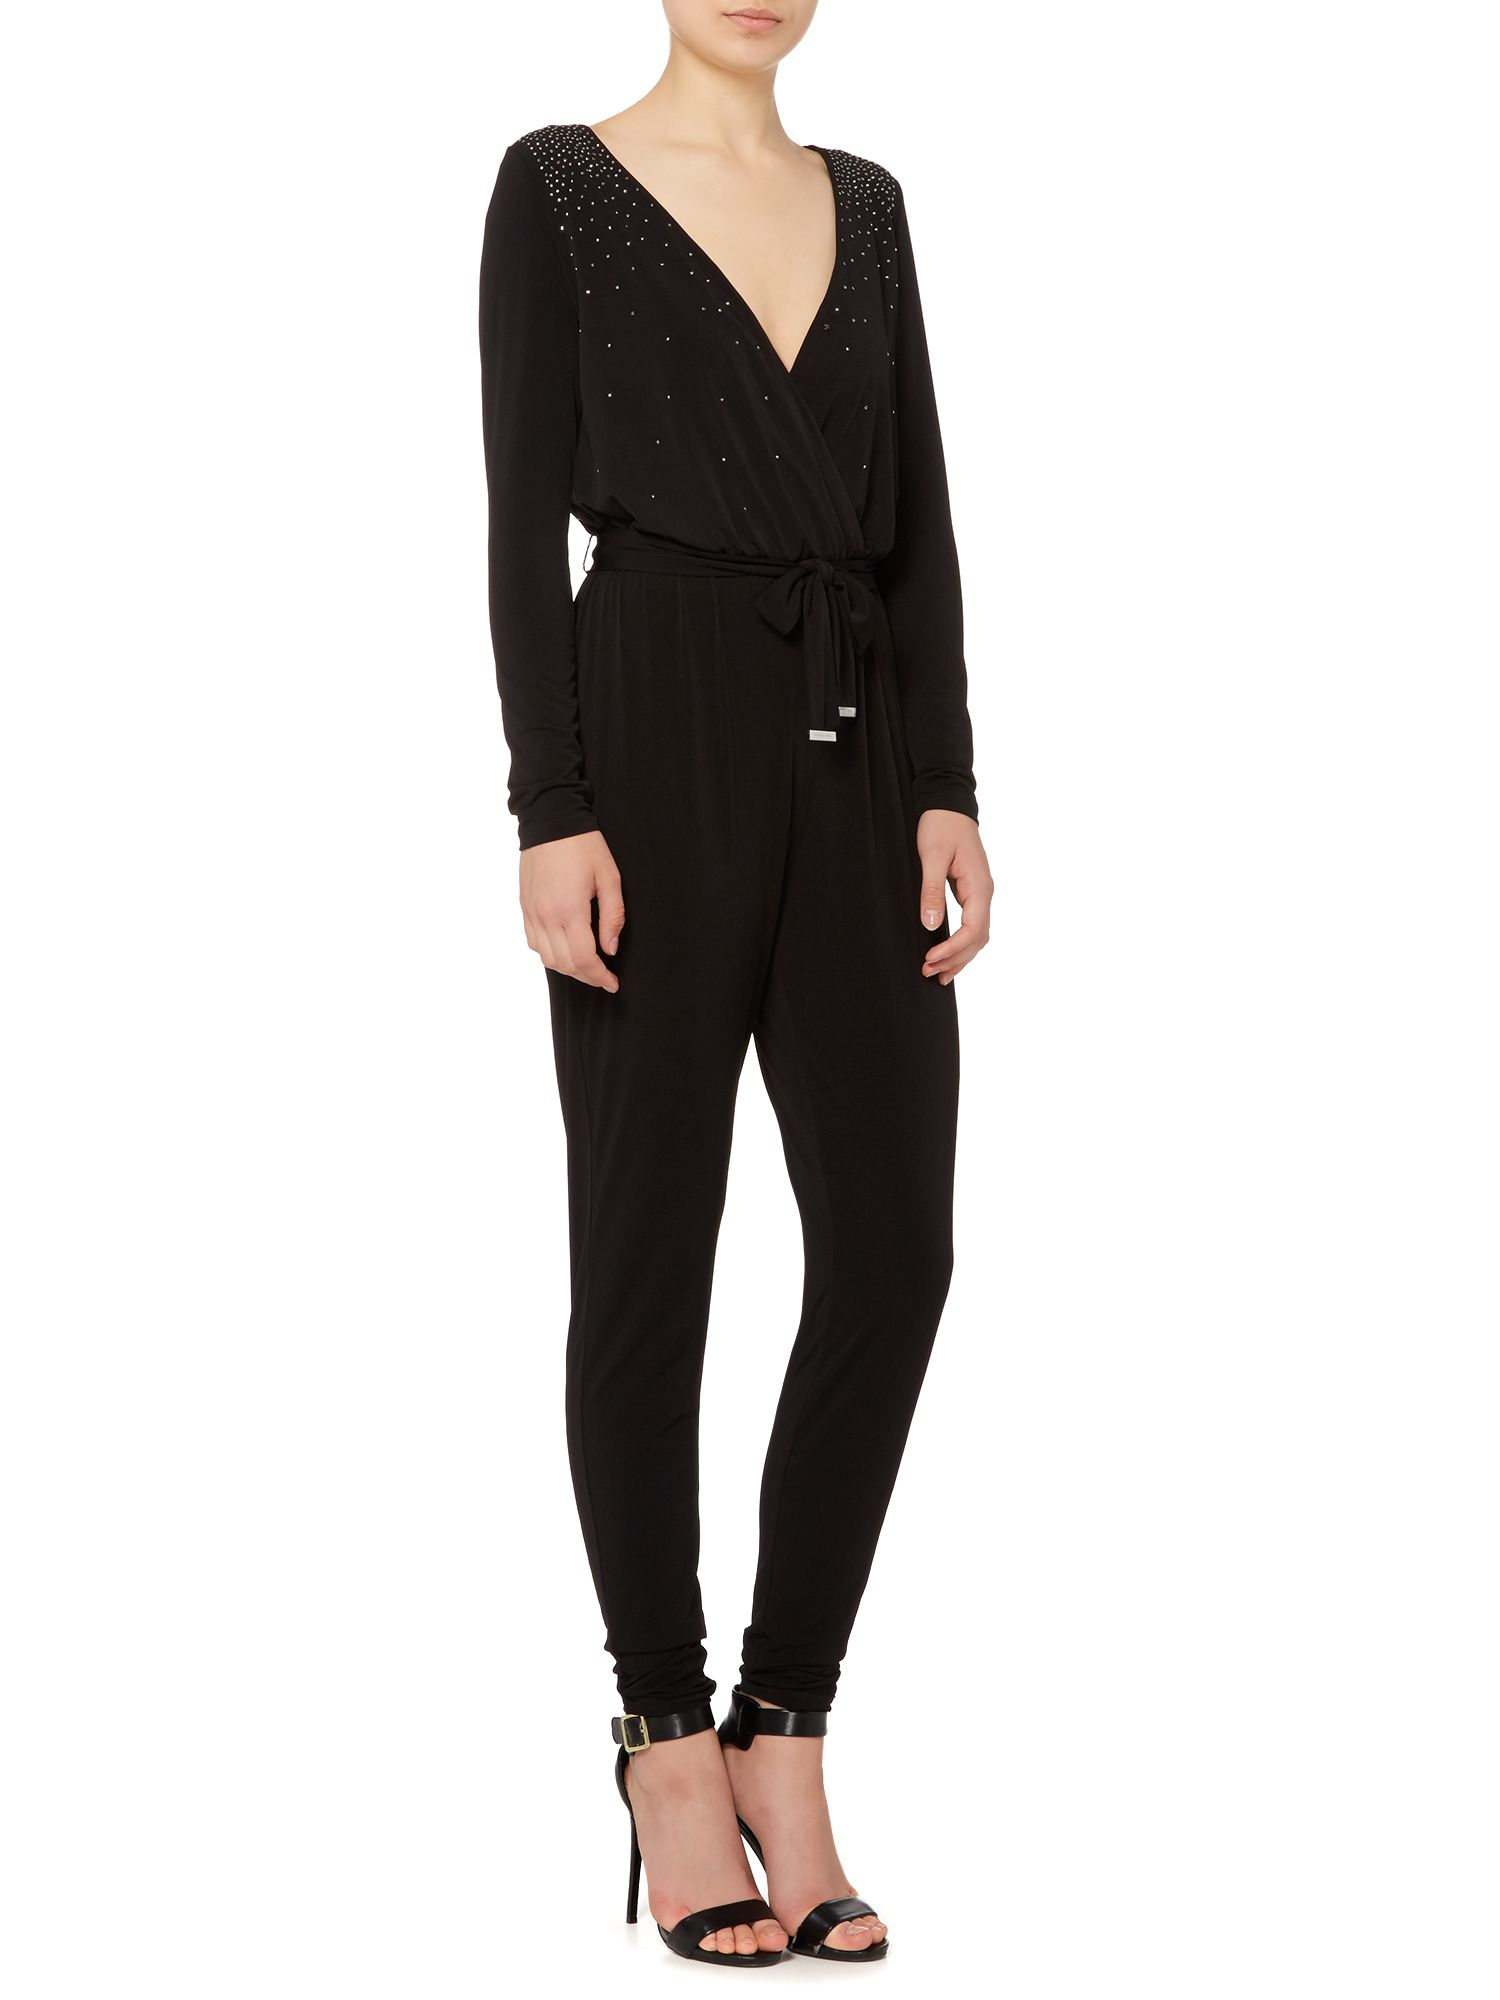 MICHAEL Michael Kors Women's Cold Shoulder Ruffled Long Sleeve Romper Michael Kors Women's Mesh Jumpsuit (M, Black/White) $ 48 iTLOTL. Summer Women Off Shoulder Printed Beach Jumpsuit Ladies Beach Romper Trousers. from $ 3 CUCUHAM. Women Summer Short Sleeve Strappy Cold Shoulder T-Shirt Tops. .